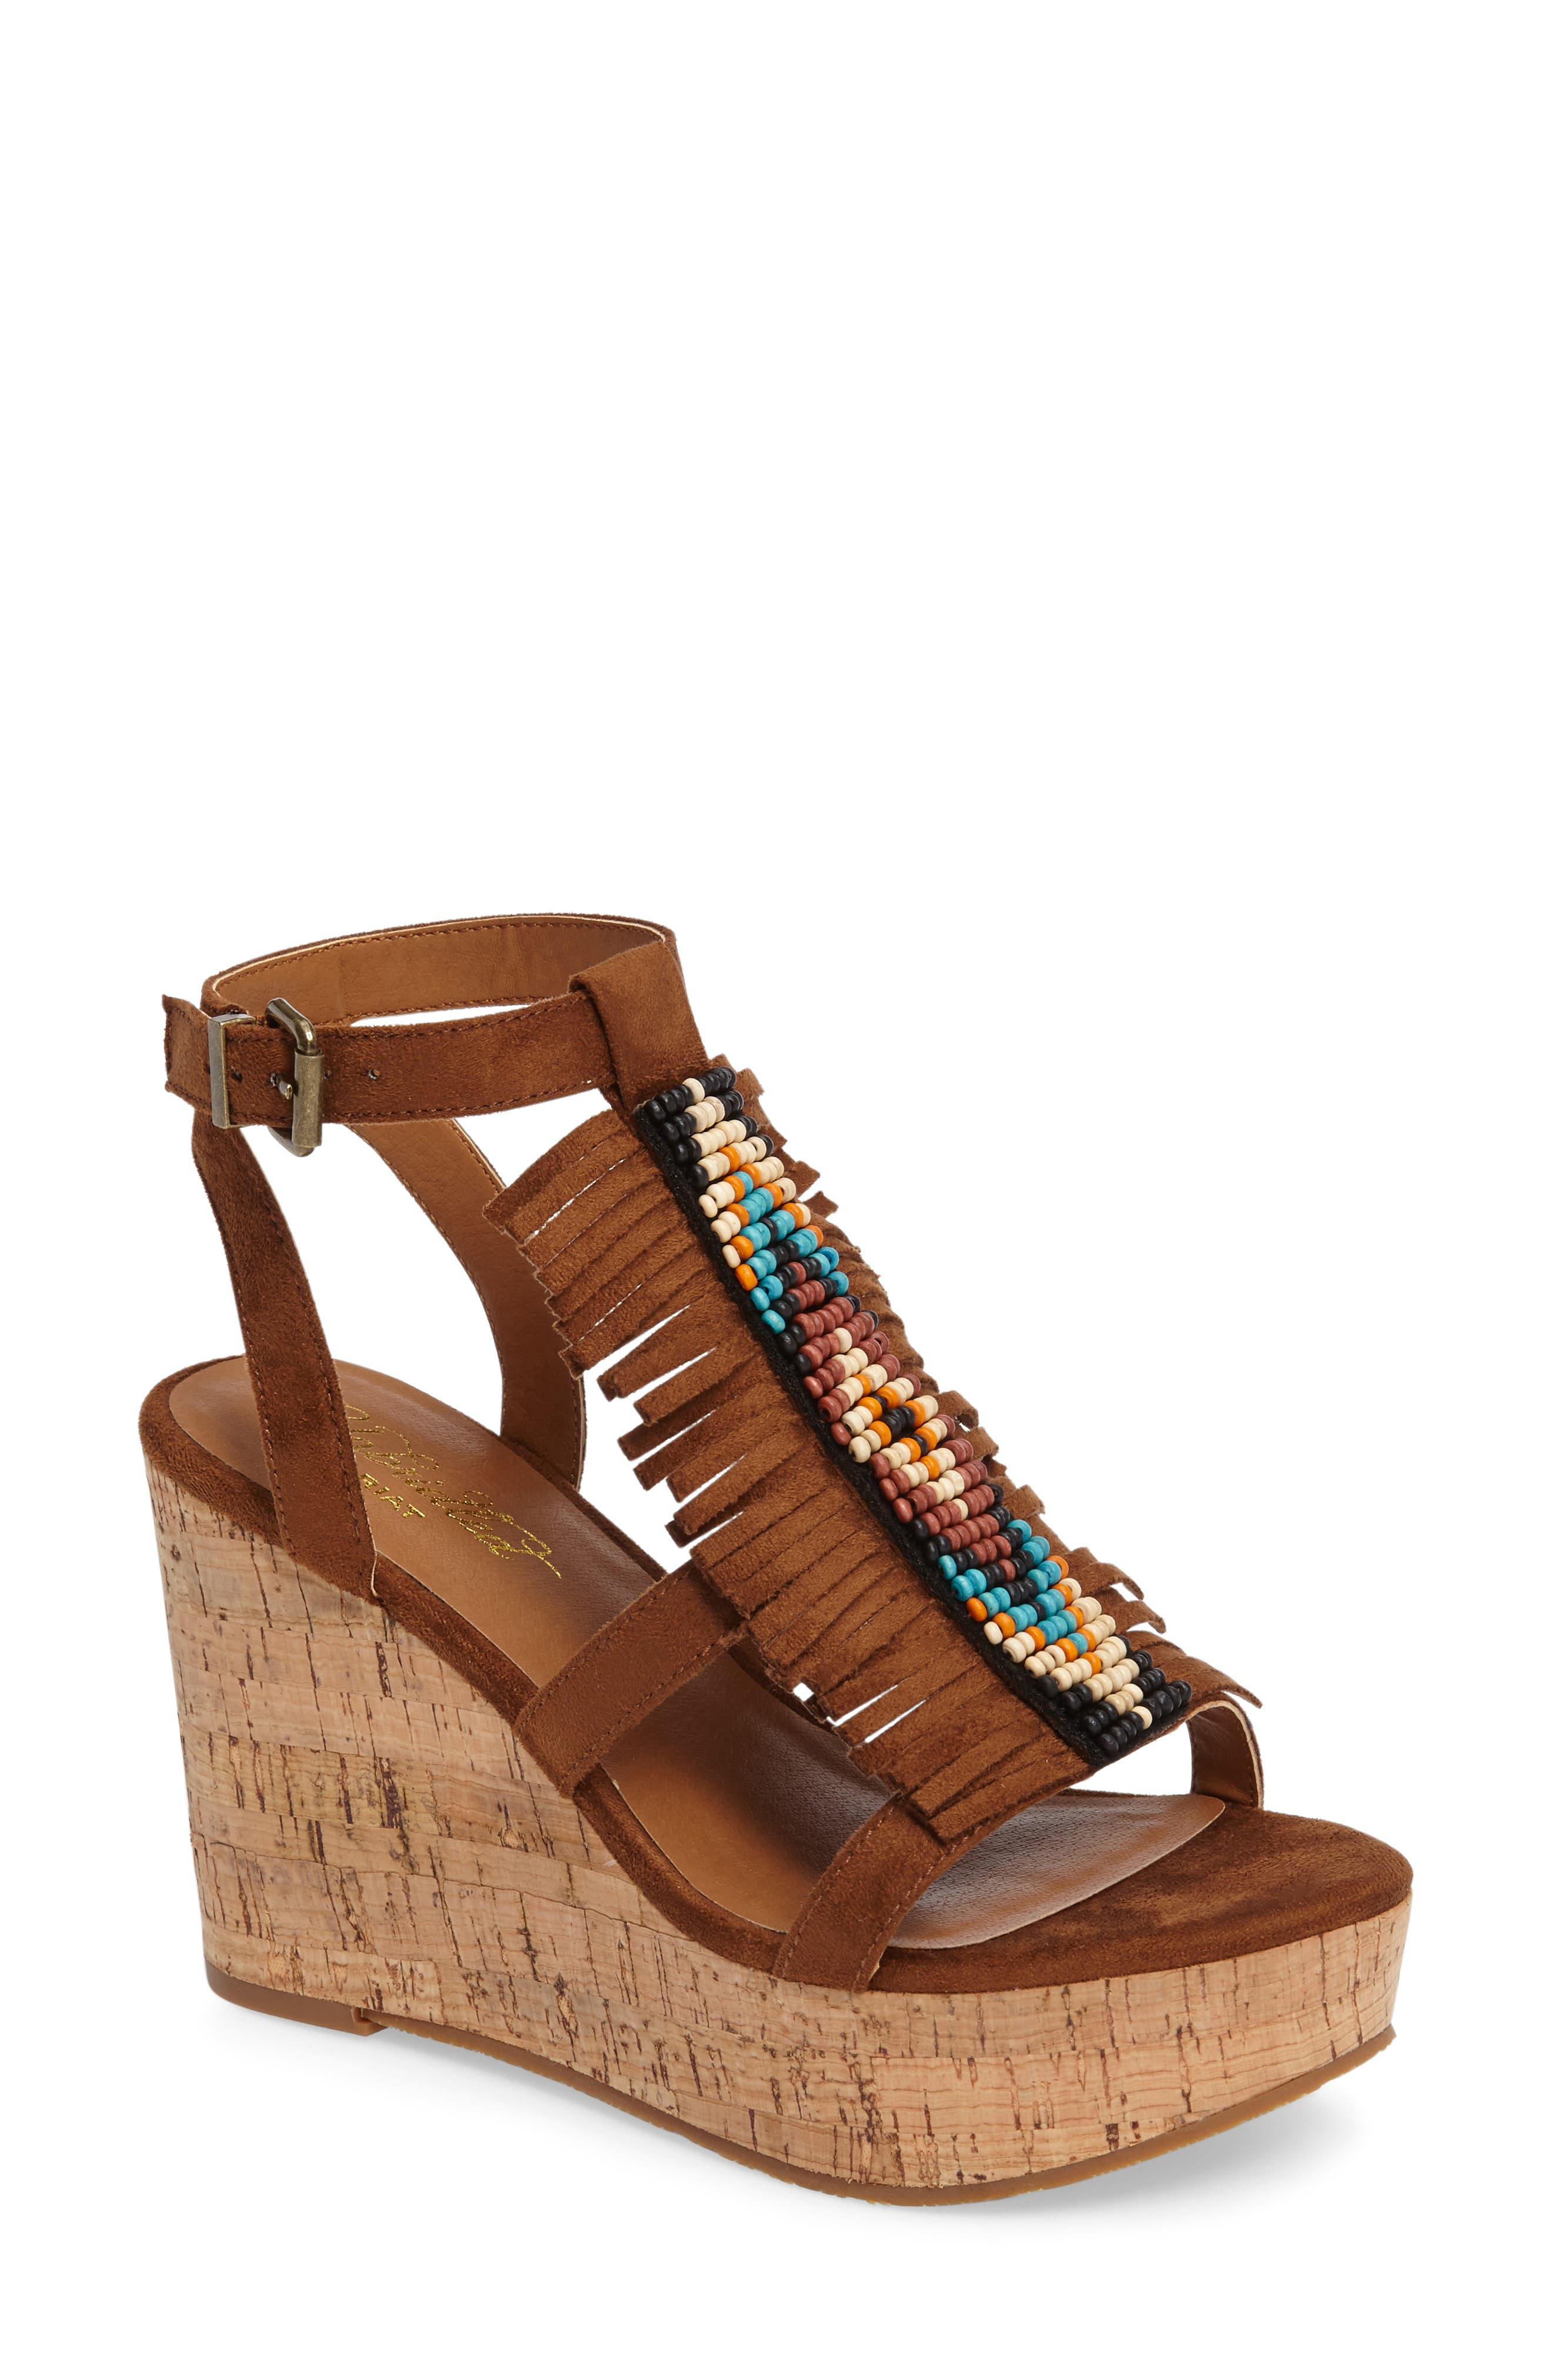 Unbridled Lolita Wedge Sandal,                             Main thumbnail 2, color,